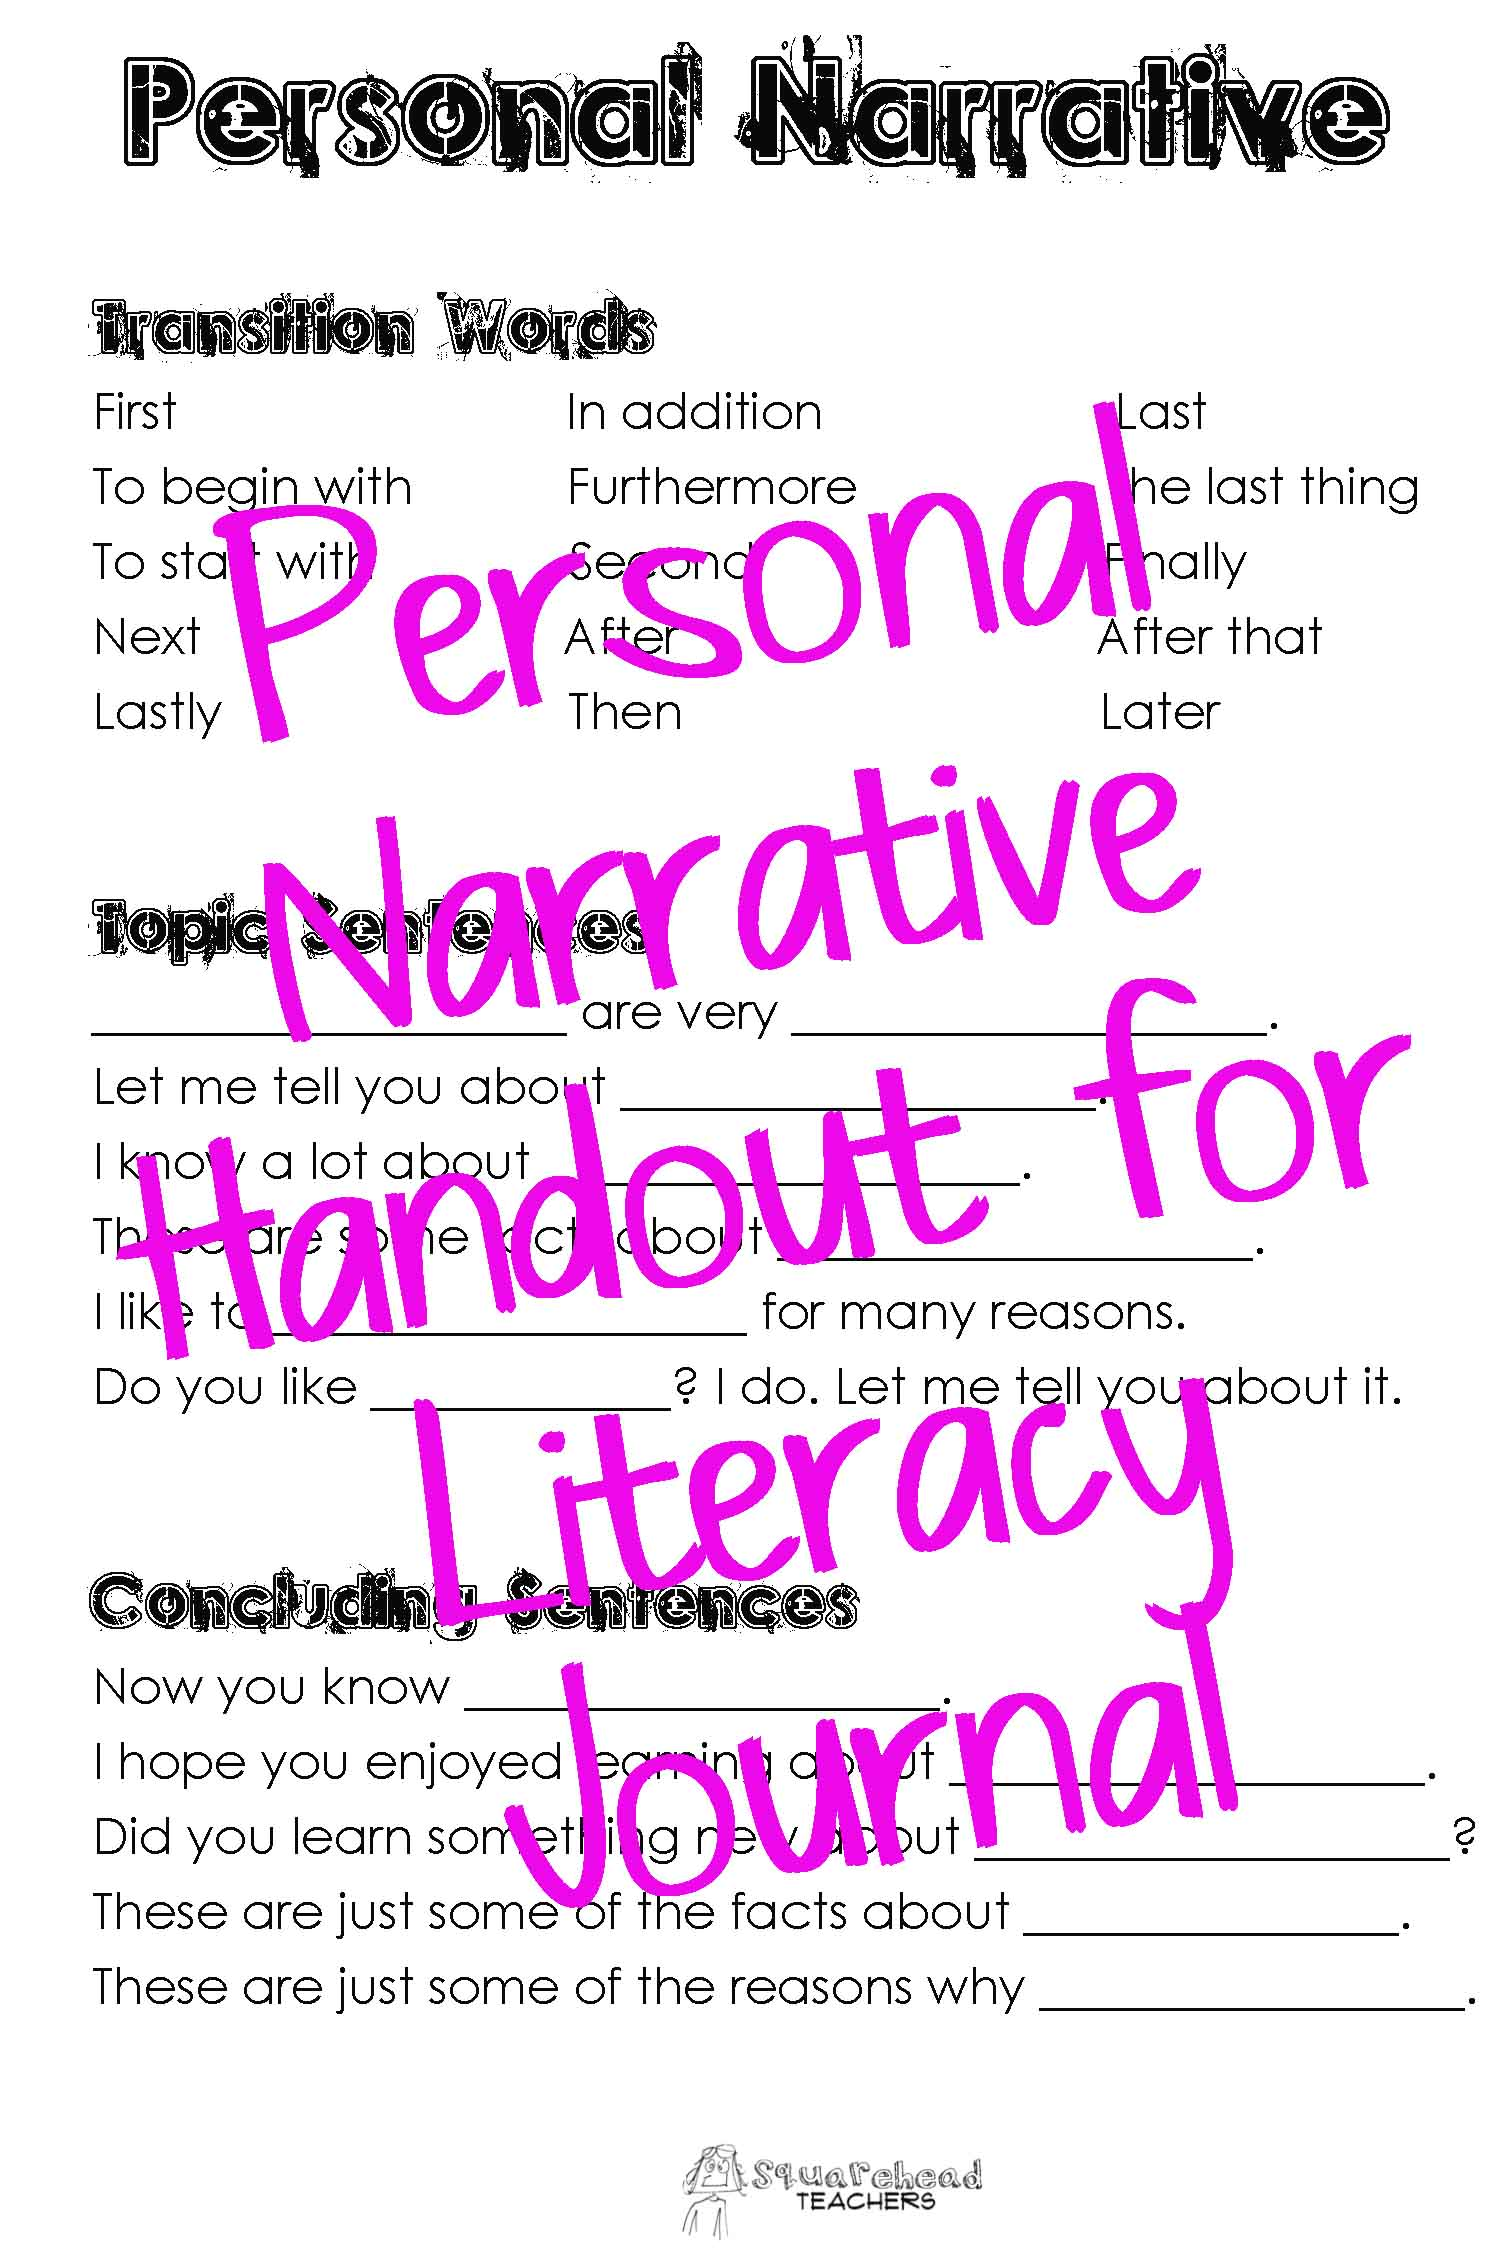 Teaching Journals Directory | Center for Excellence in ...